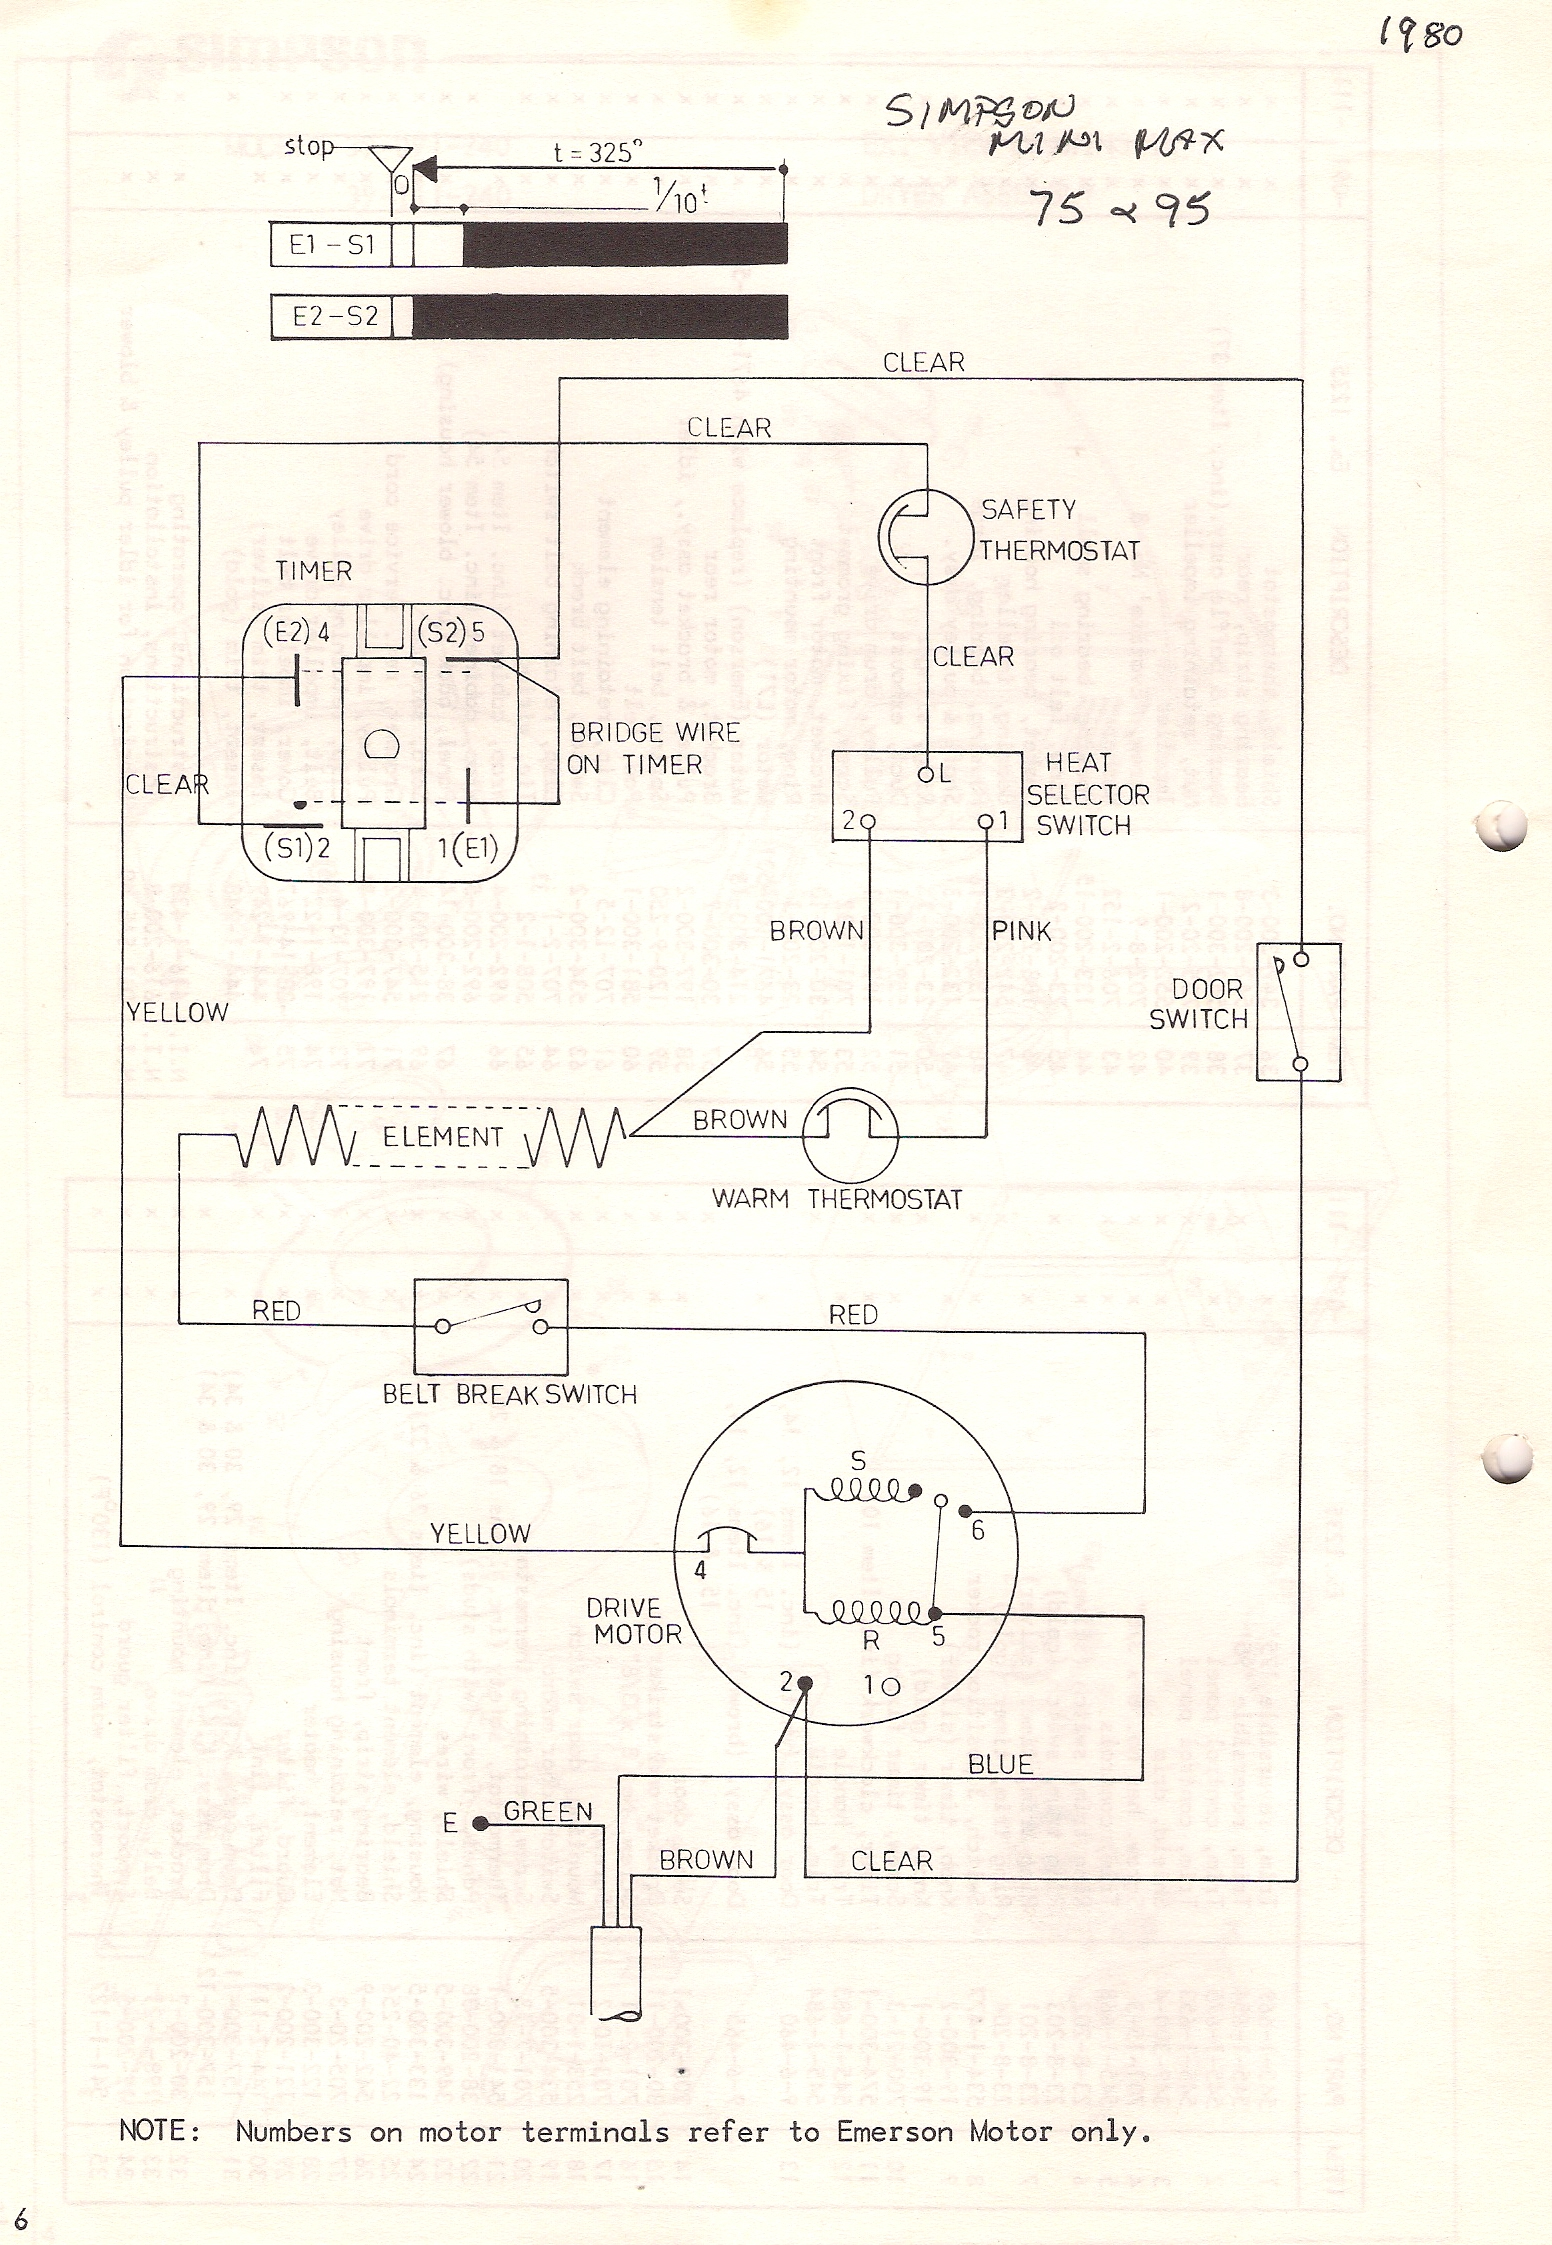 help needed wiring an dryer motor electronics forum (circuits frigidaire dryer door switch wiring diagram at honlapkeszites.co